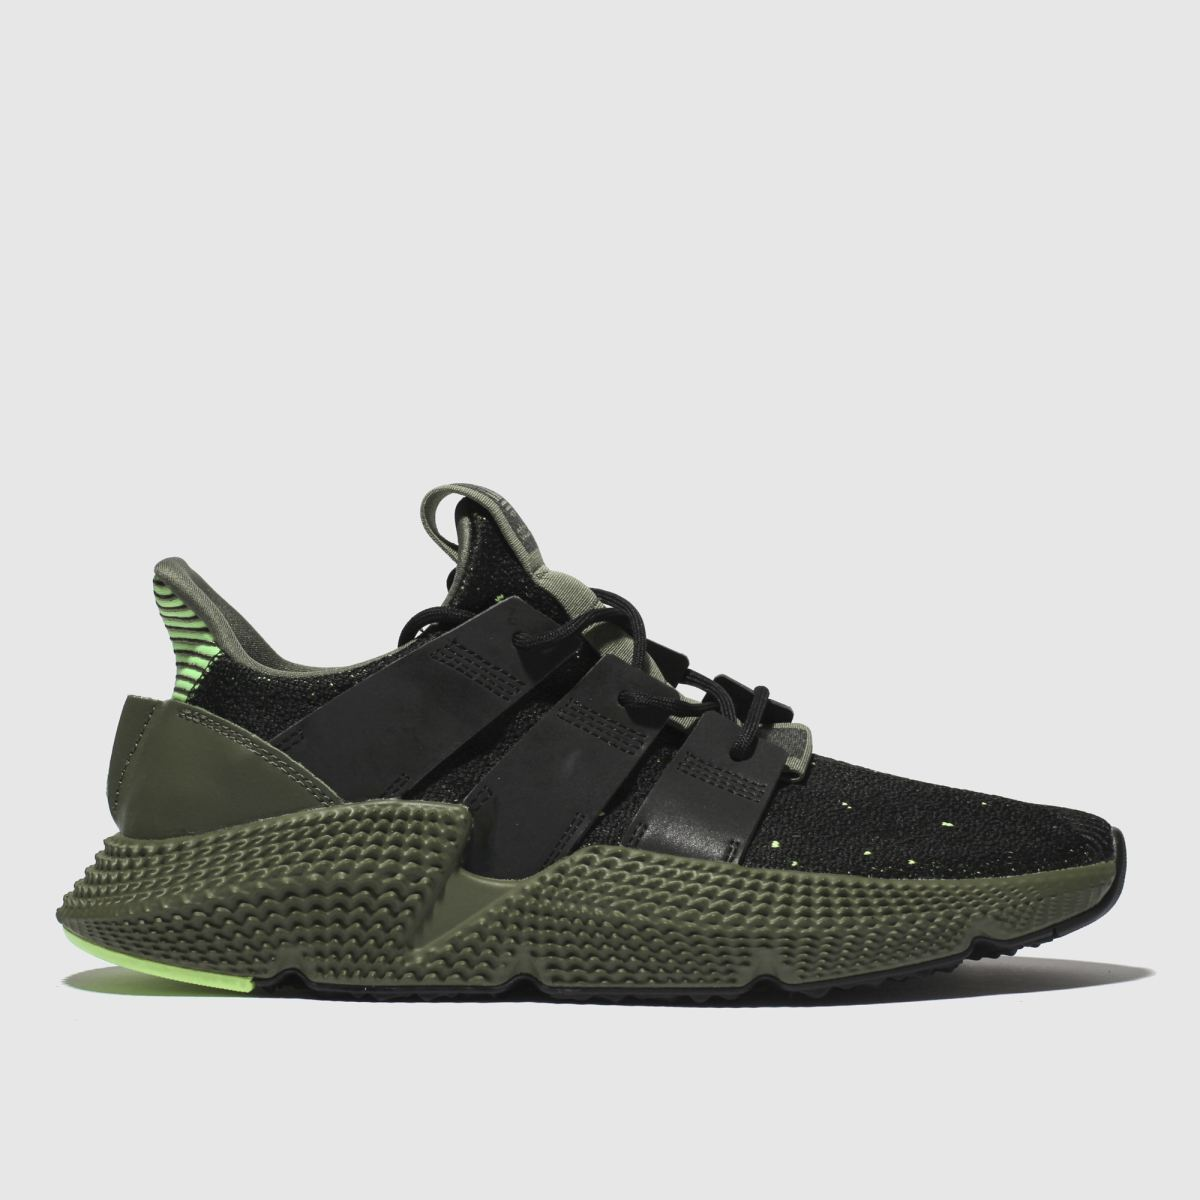 Adidas Black & Green Prophere Trainers